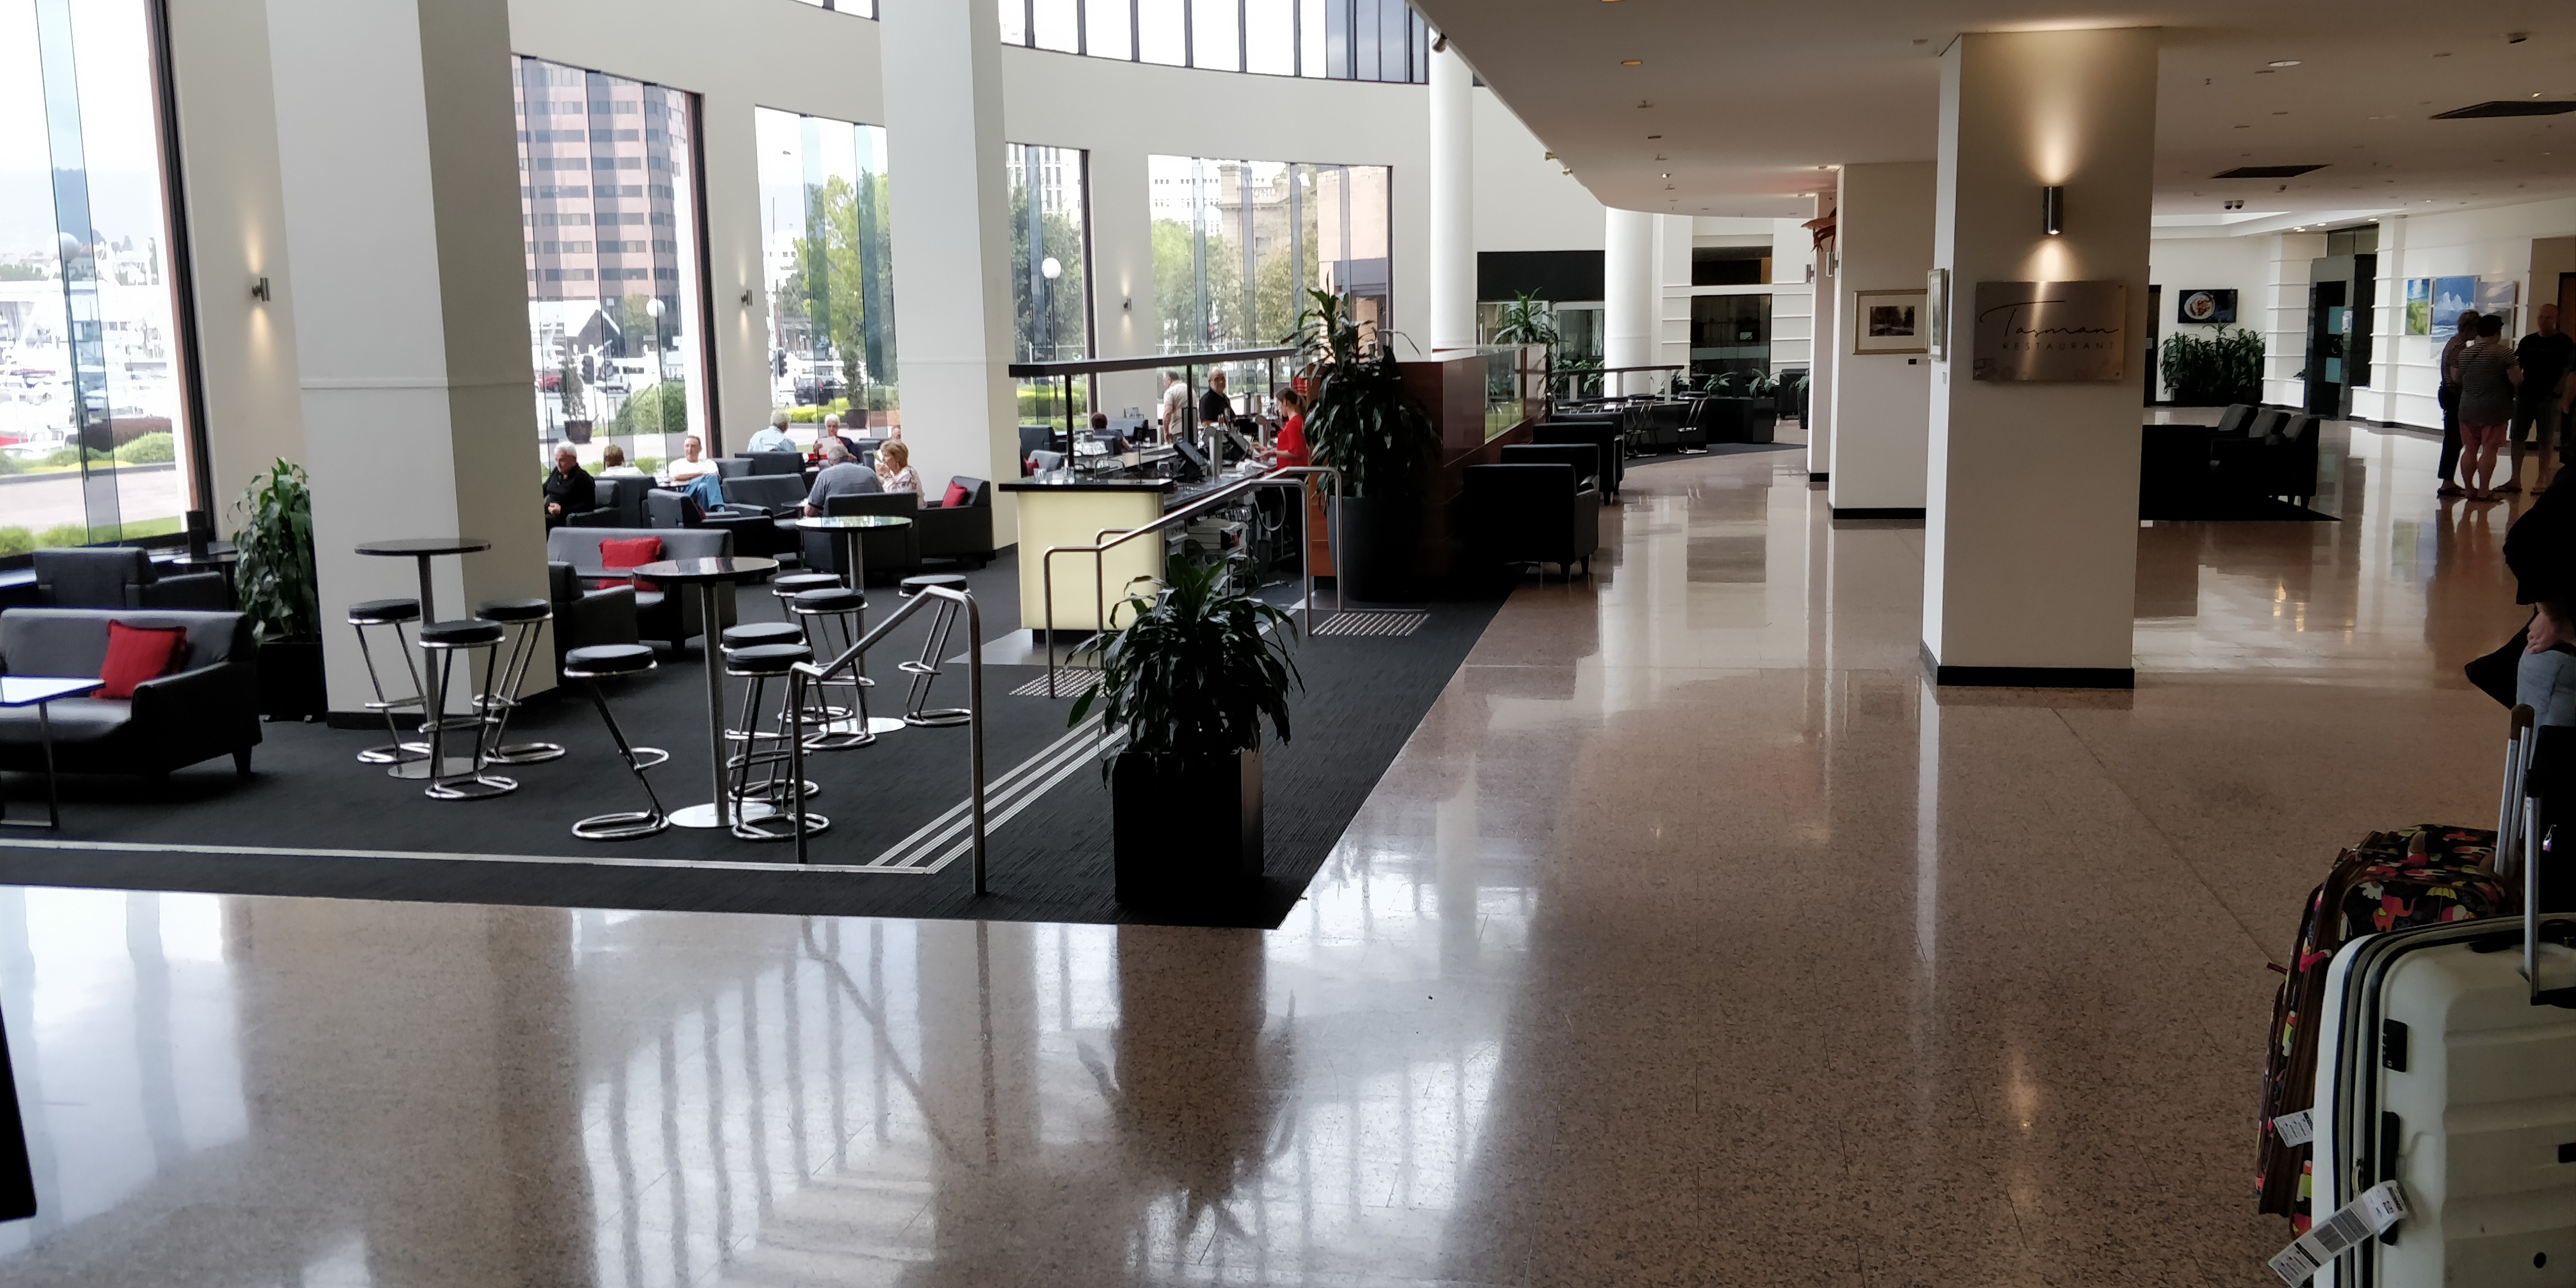 REVIEW OF THE HOTEL GRAND CHANCELLOR HOBART > CAPTAIN'S ...